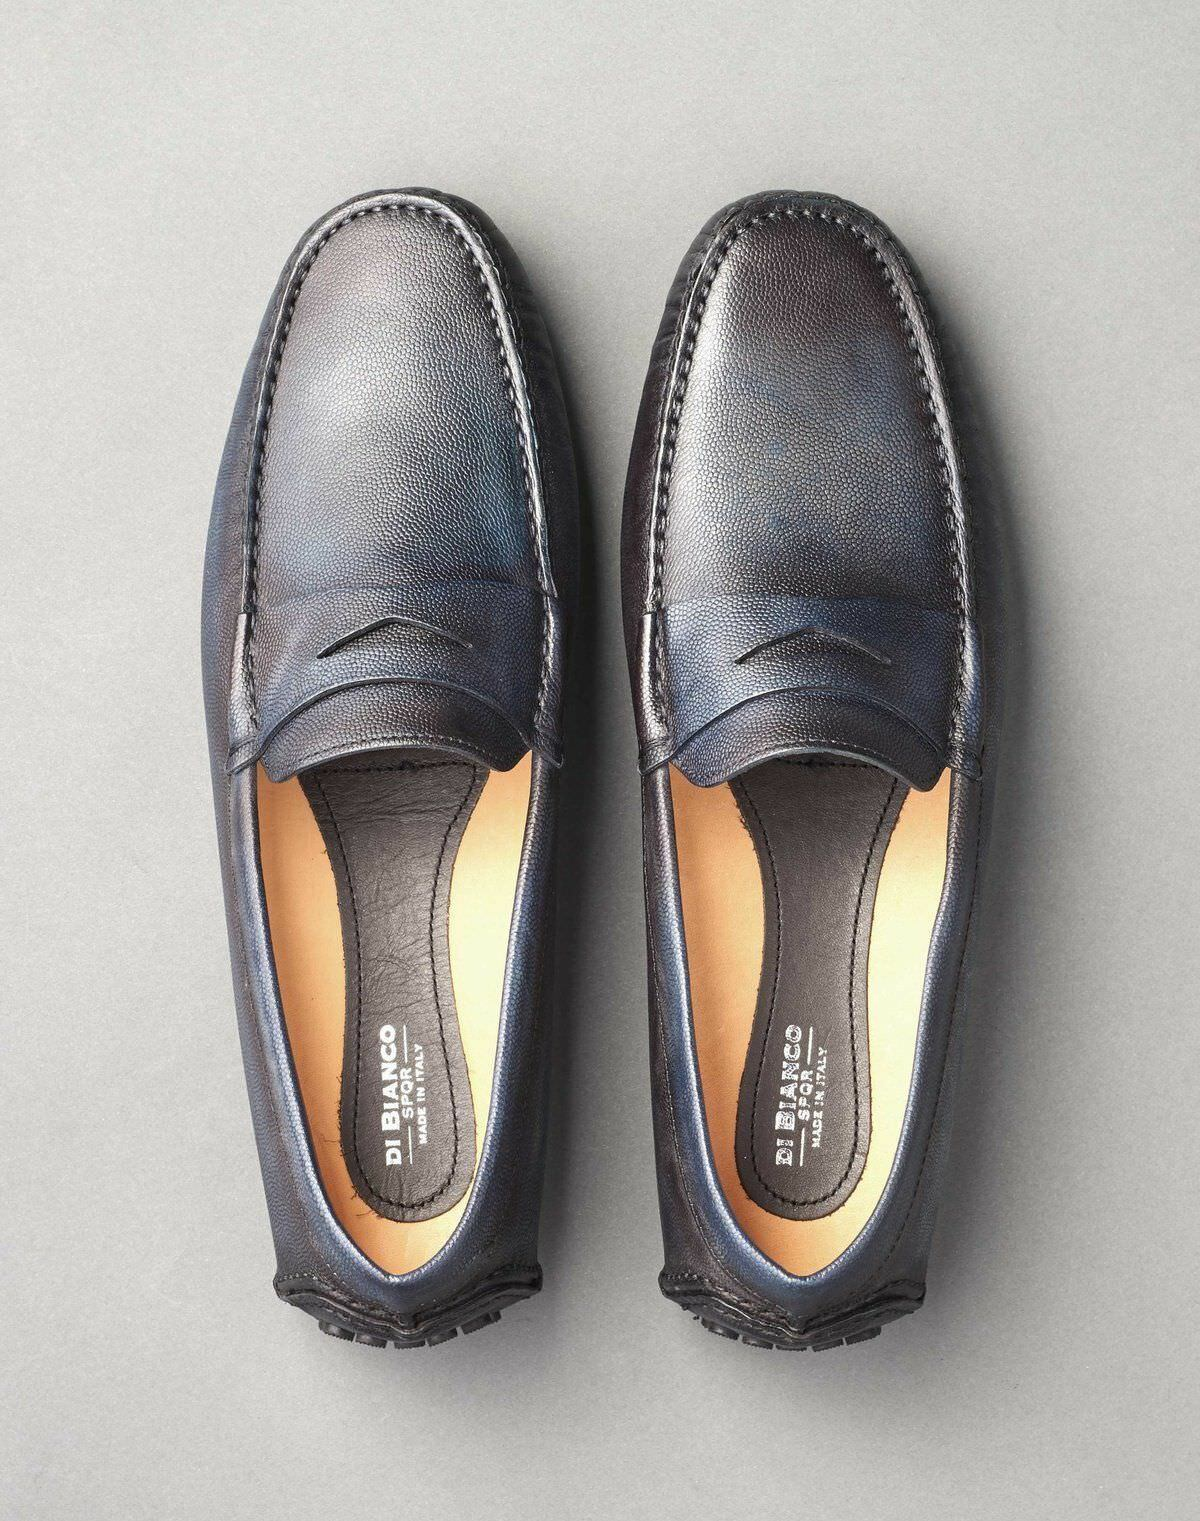 shoes Di Bianco 'Oceano' SPQR Moccasin Loafer bluee shoes 11.5